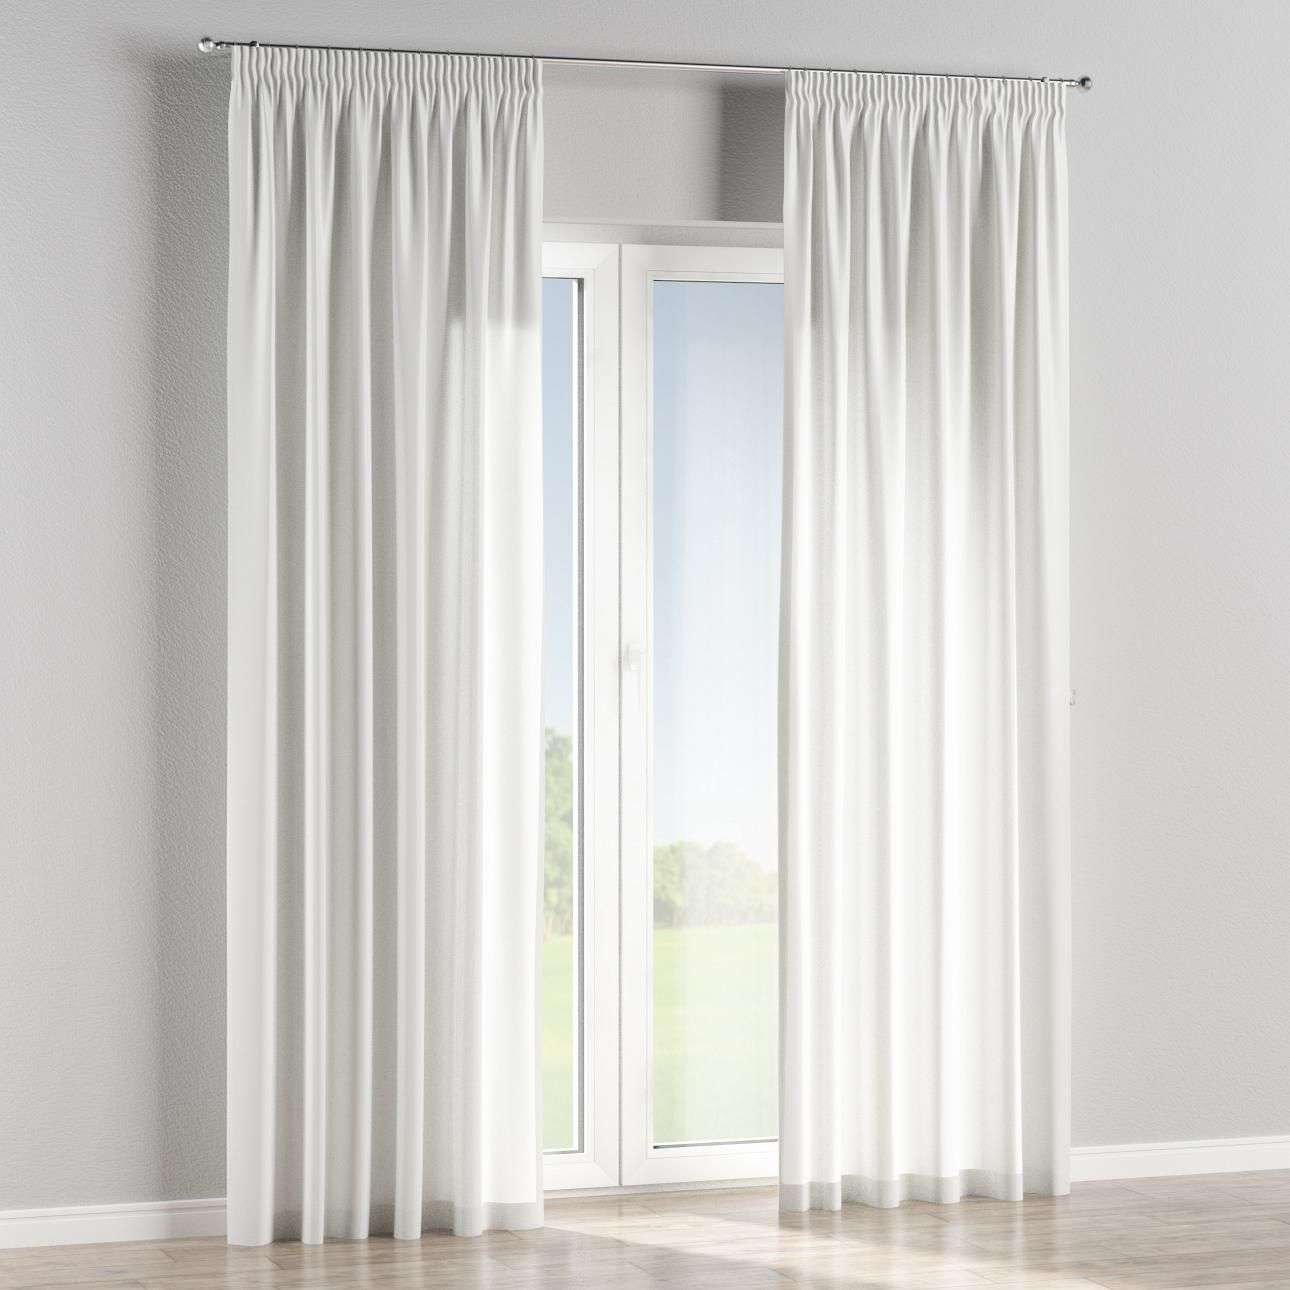 Pencil pleat lined curtains in collection Rustica, fabric: 138-19